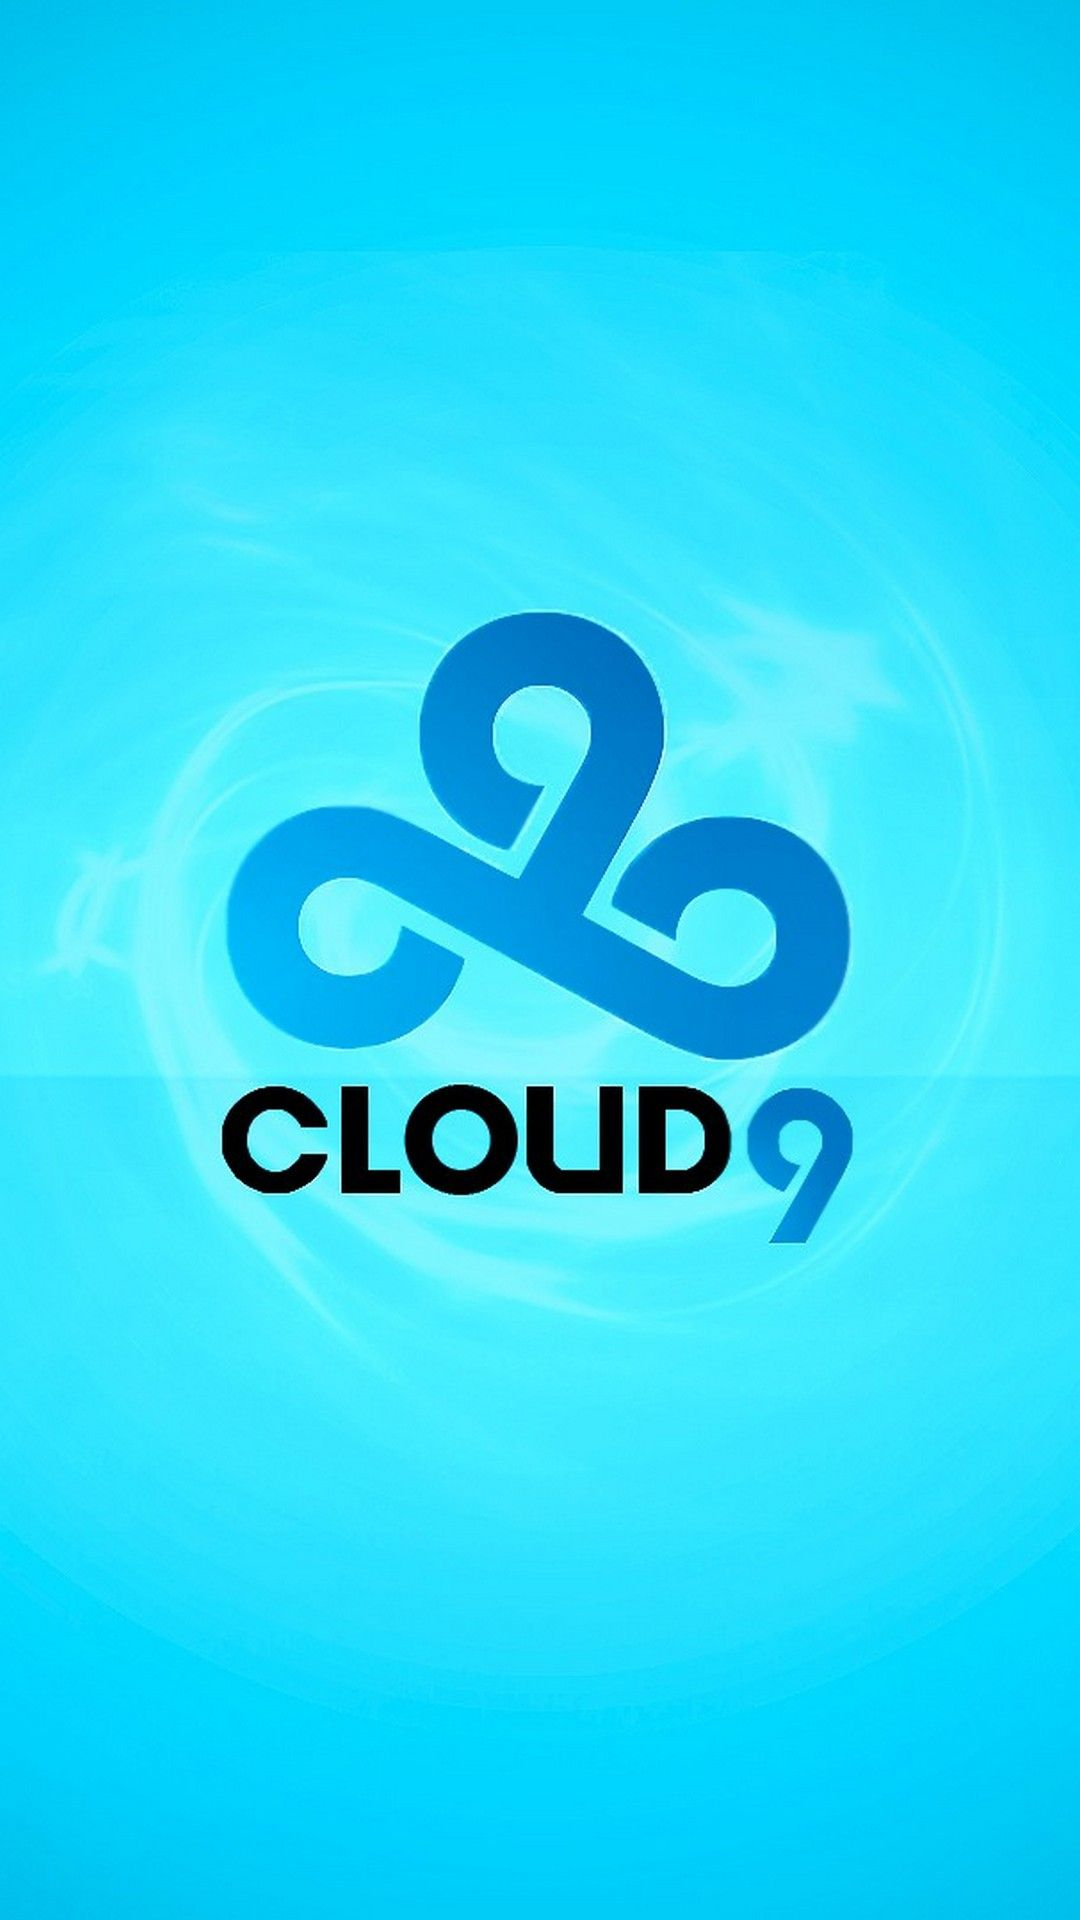 Wallpaper Android Cloud 9 Cloud 9 Android Wallpaper Cloud 9 Csgo